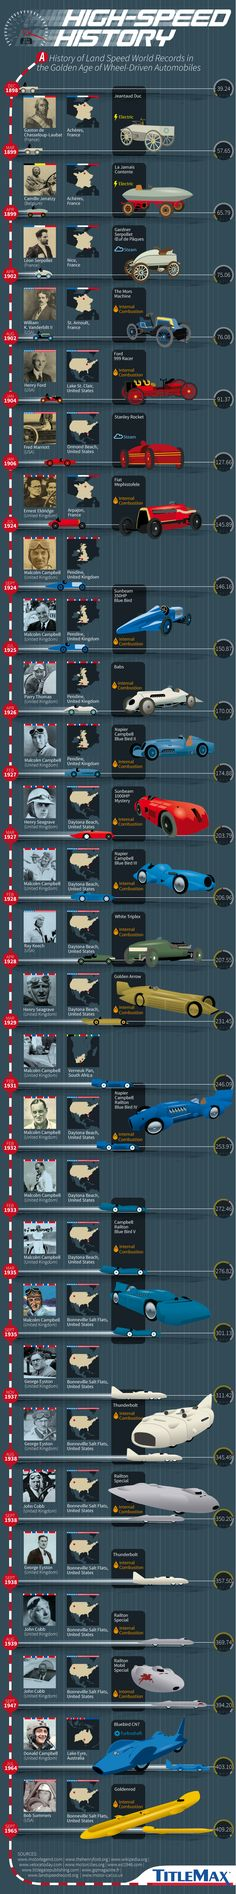 High-Speed History: A Visual Timeline of Landspeed Records #infographic